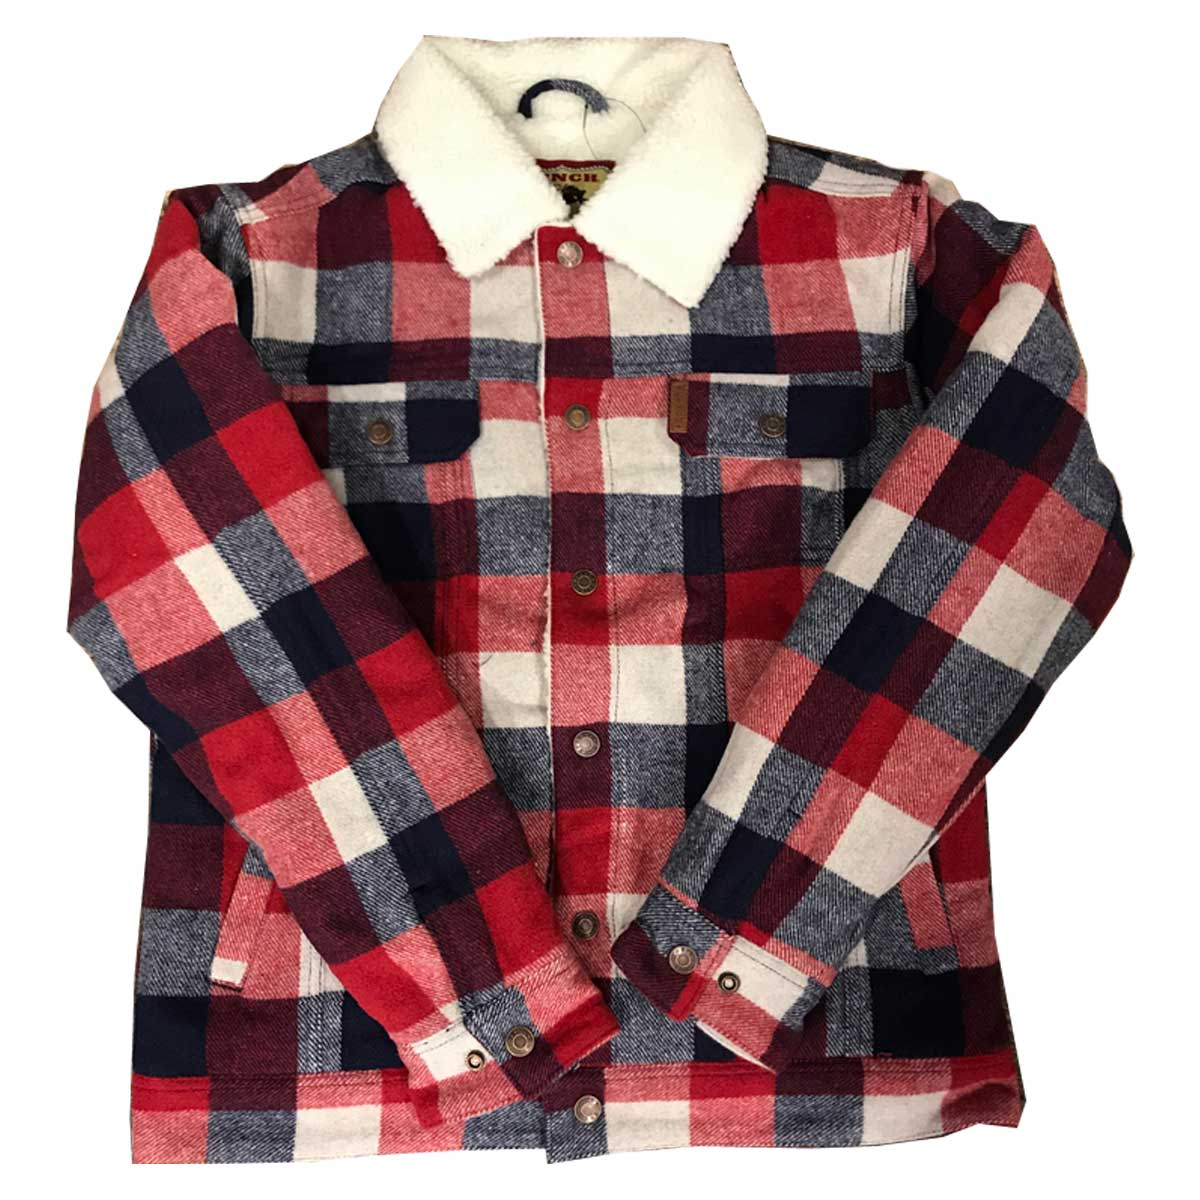 Cinch Men's Trucker Jacket - Red Blue Plaid